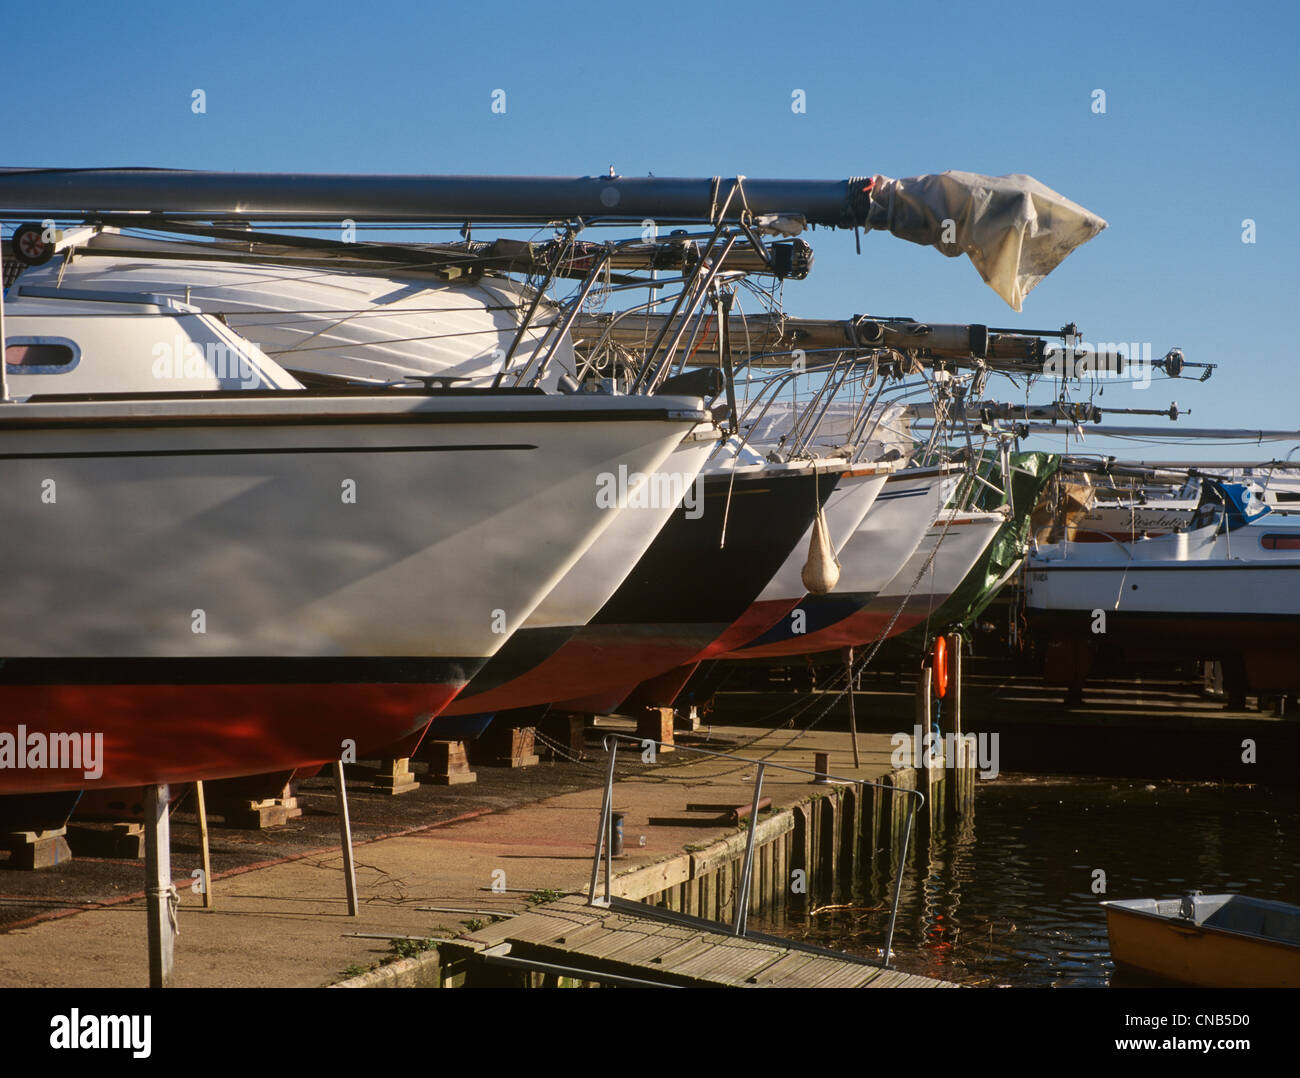 Christchurch Dorset Quayside Detail of Yacht bows - Stock Image